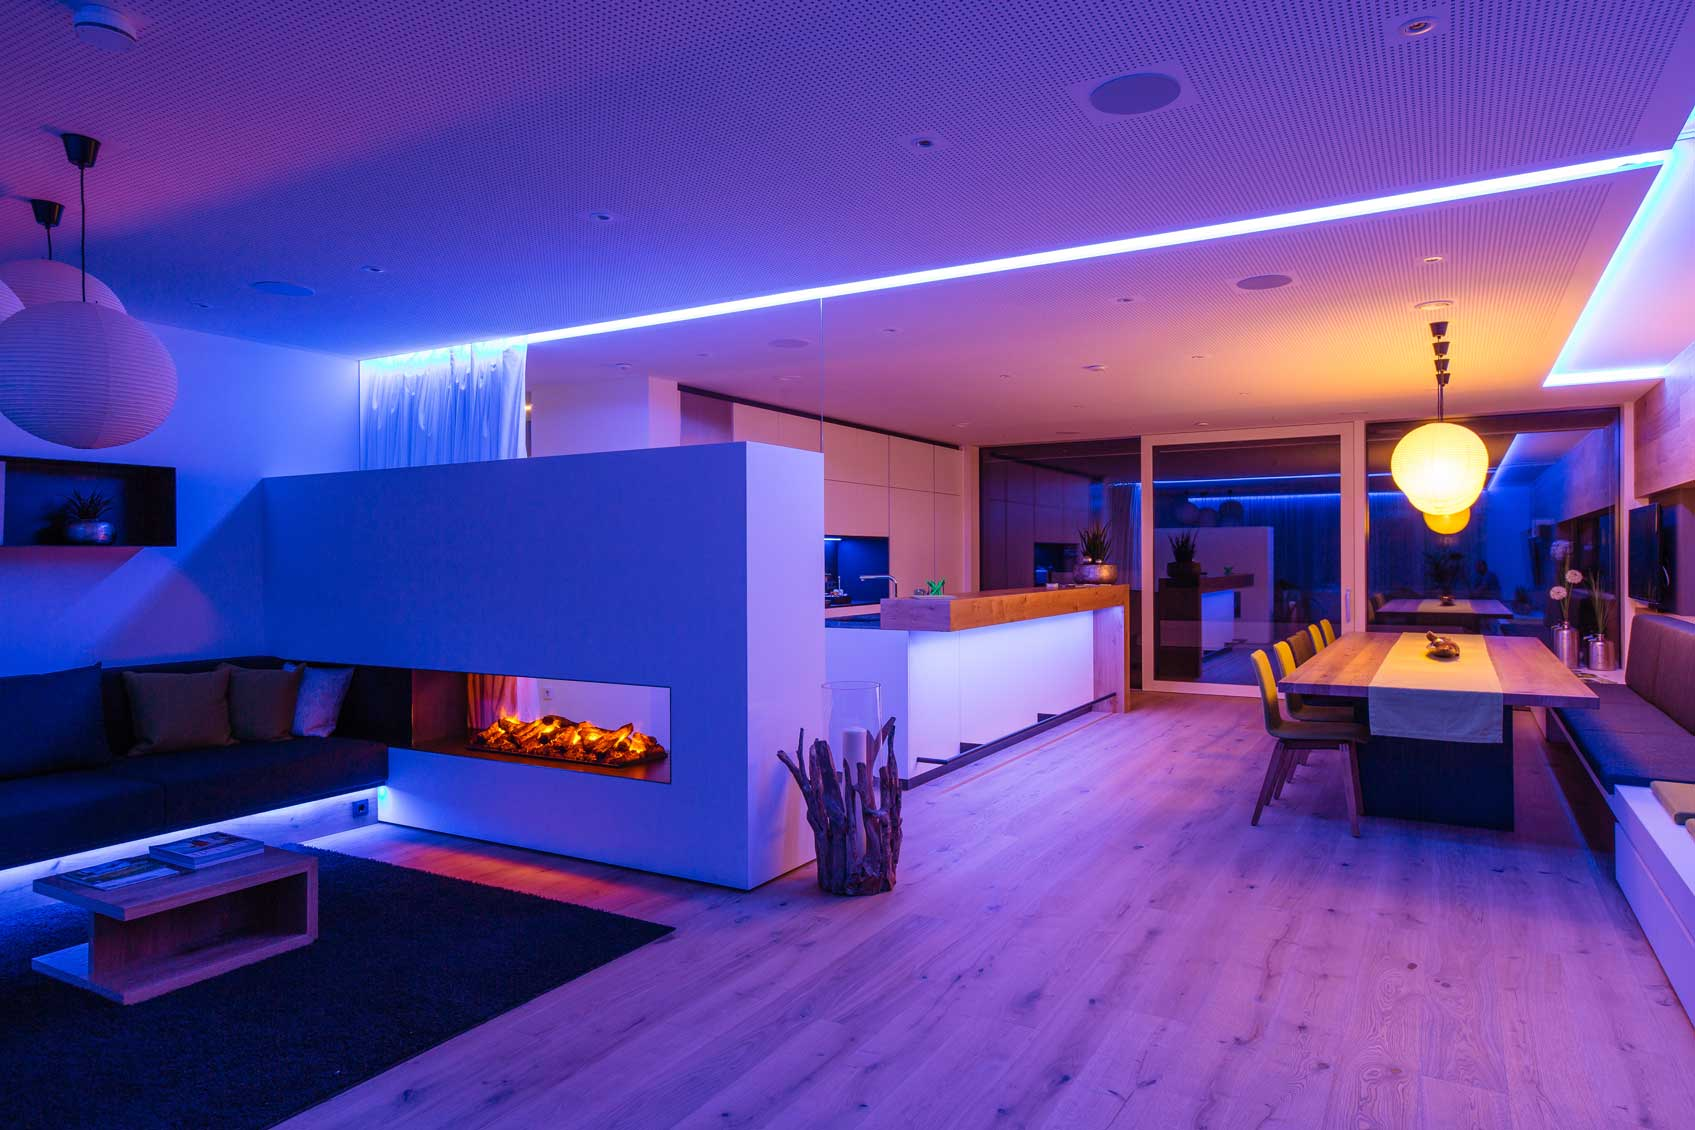 How to install led interior lights?